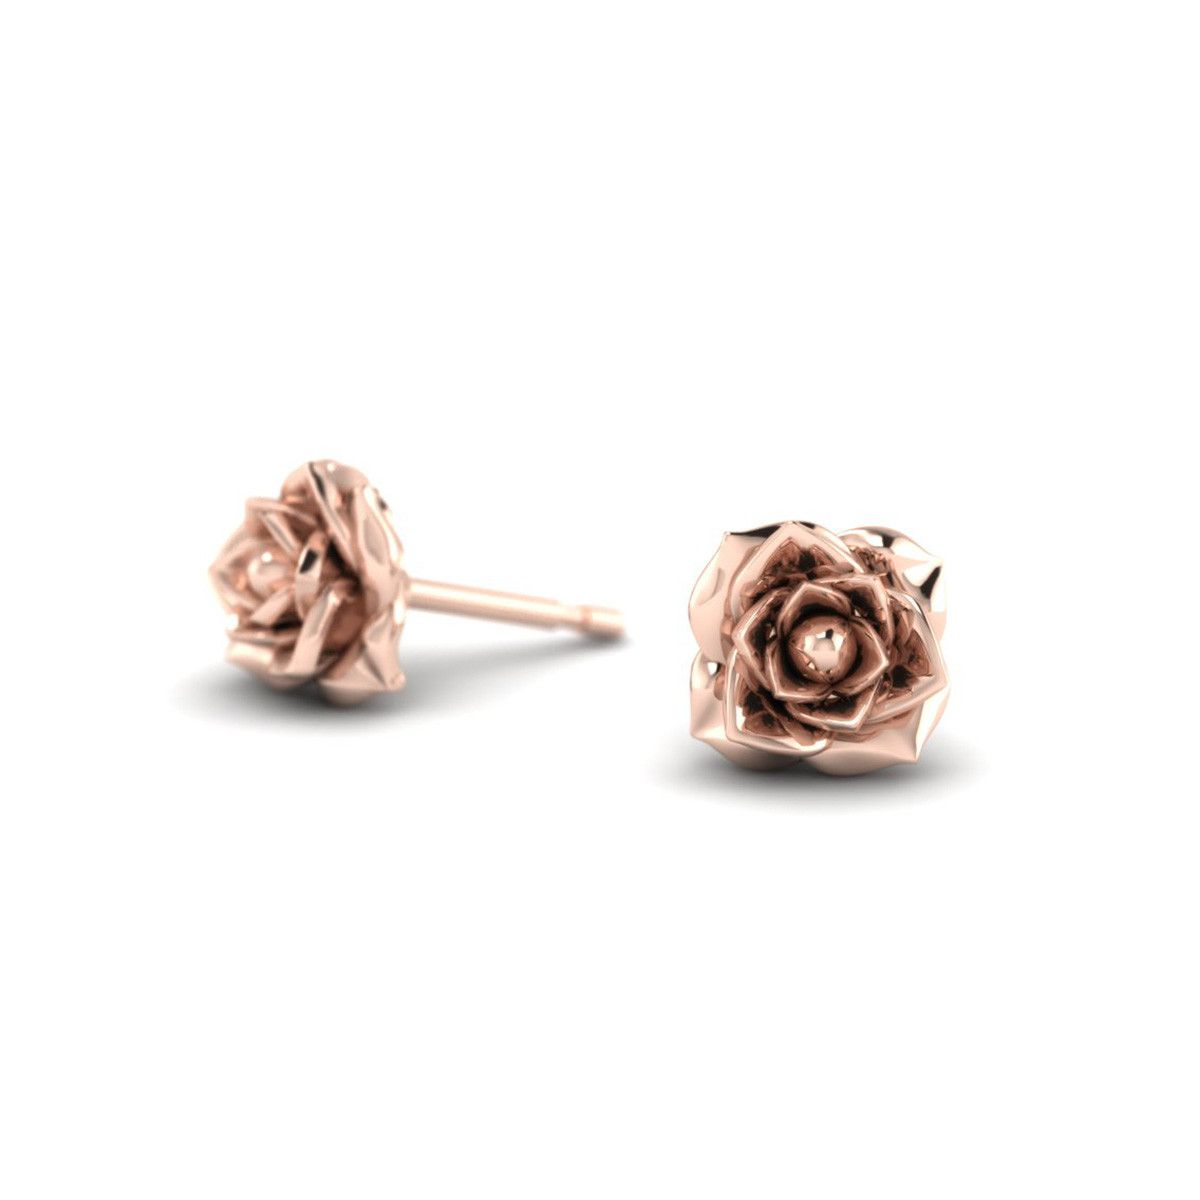 enameled oliviaea small earrings flower gold lucie diamonds studio olivia meme stud solid p